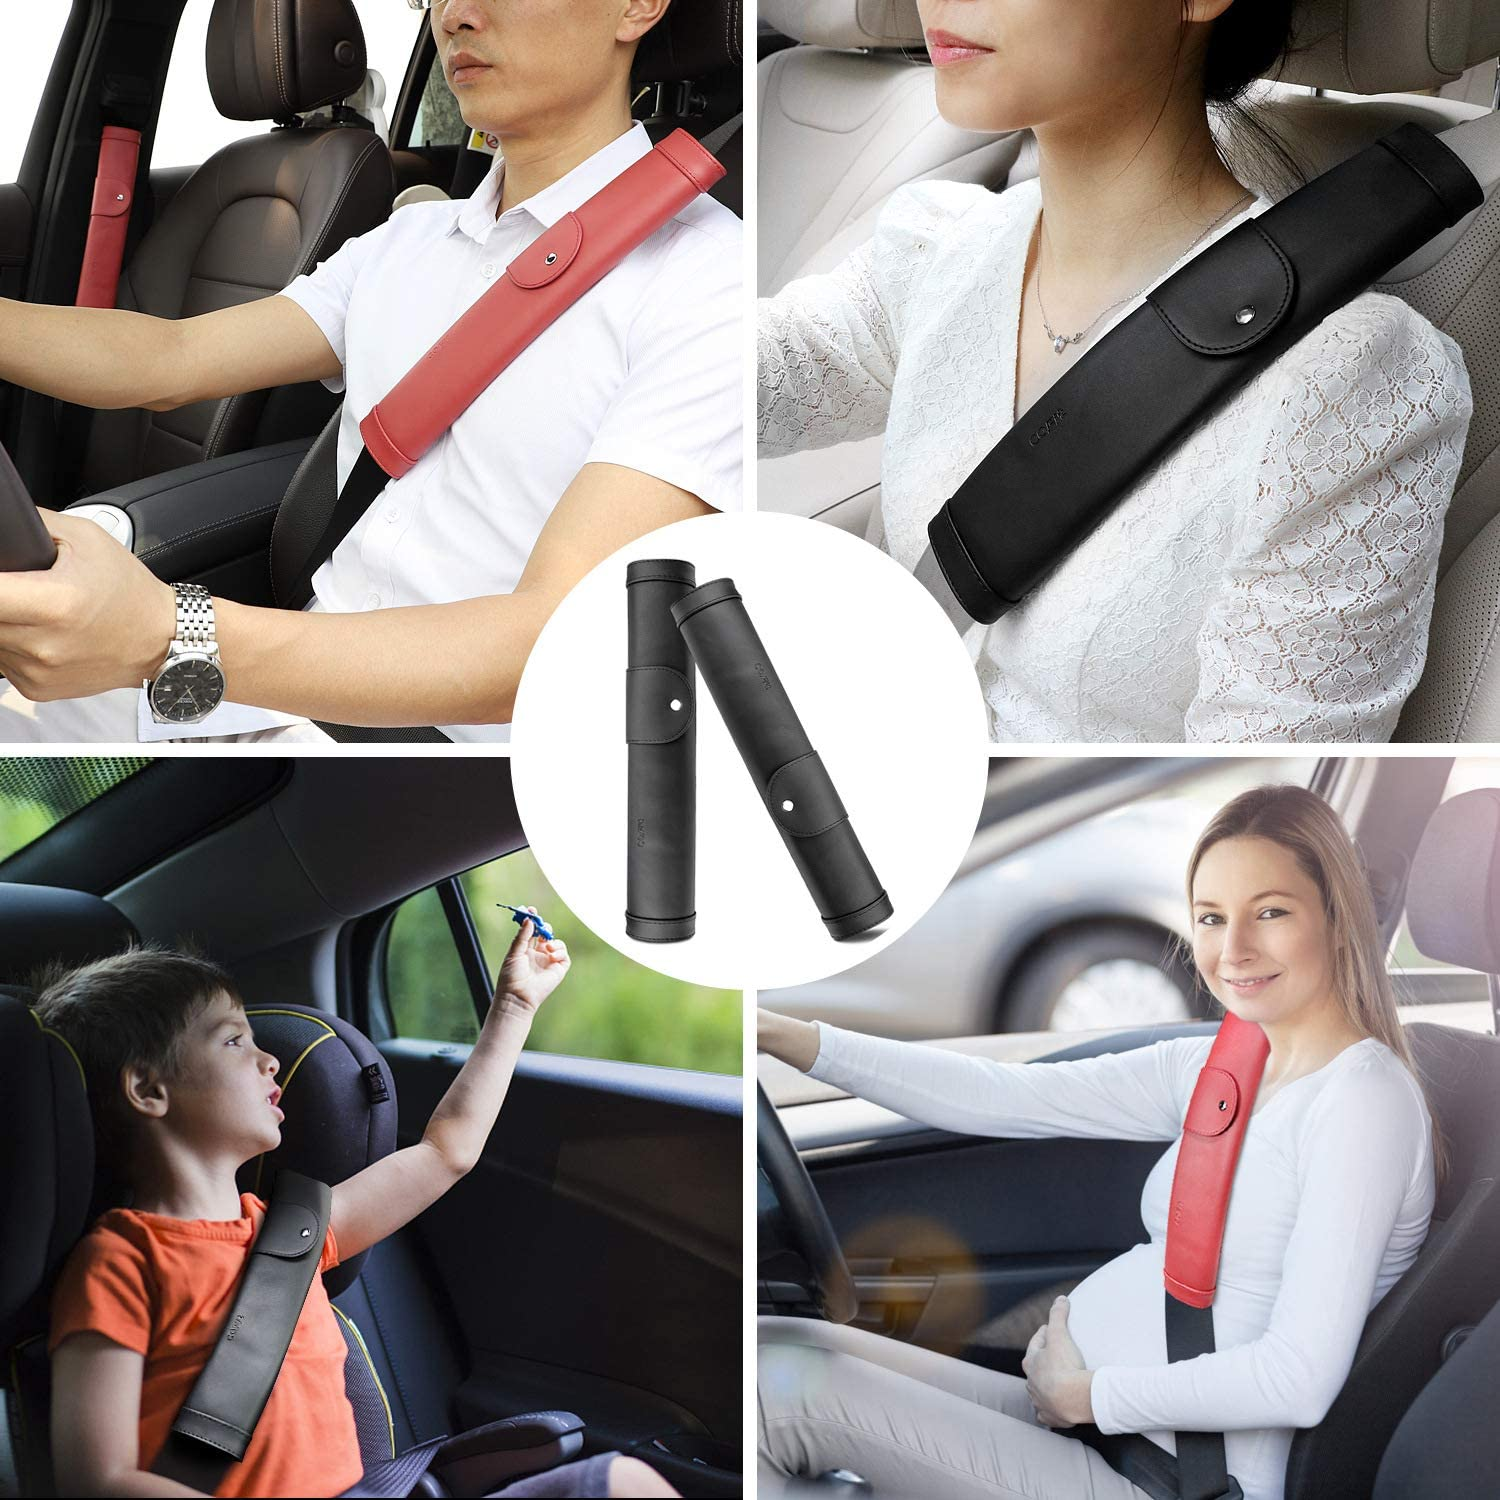 Pack of 2 COFIT Seat Belt Pads Extended Black 13 Long Pads with More Comfort Shoulder Protection for Your Driving and Journey